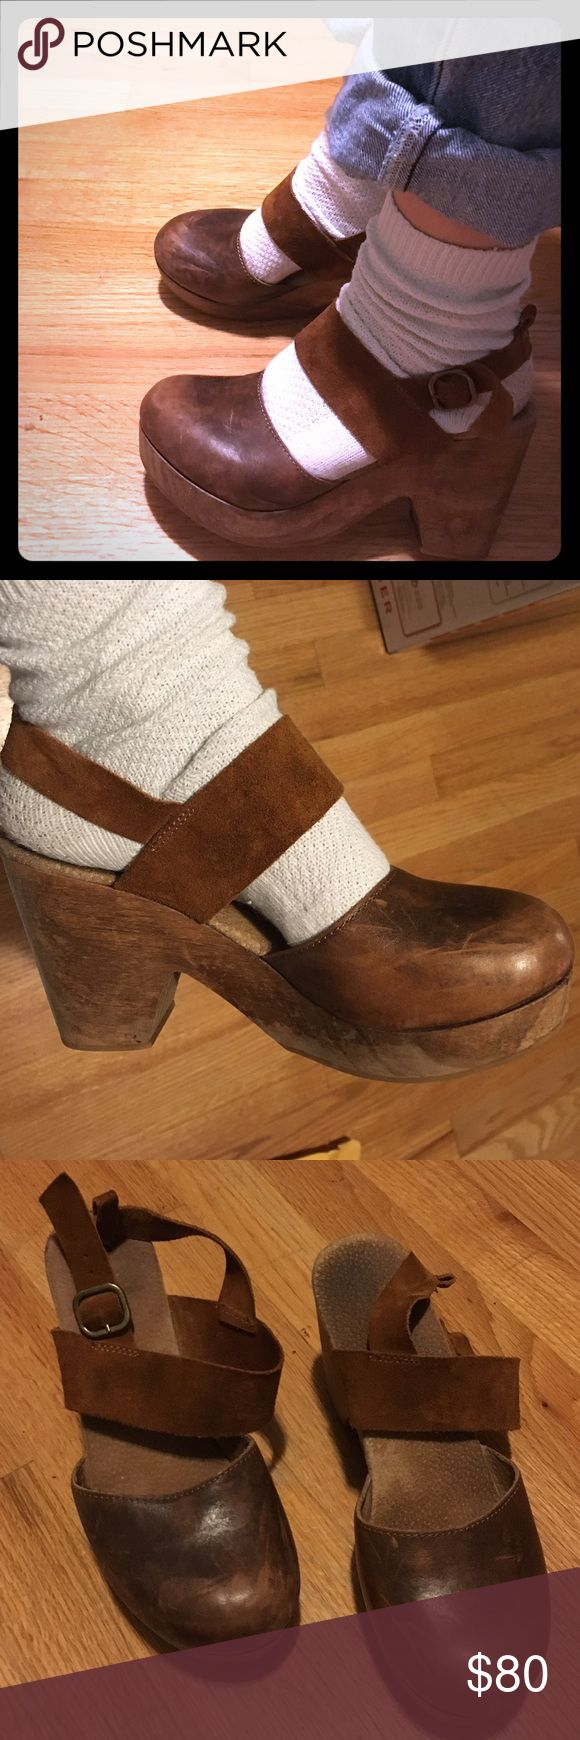 Free People Belmont Clog Super cute FP clogs. I bought them a few years ago and I've only worn them a handful of times. They look perfect with some cute socks and tights.. And anything really! Hope they find a home where they'll be shown off more. Comment with any questions! Free People Shoes Mules & Clogs